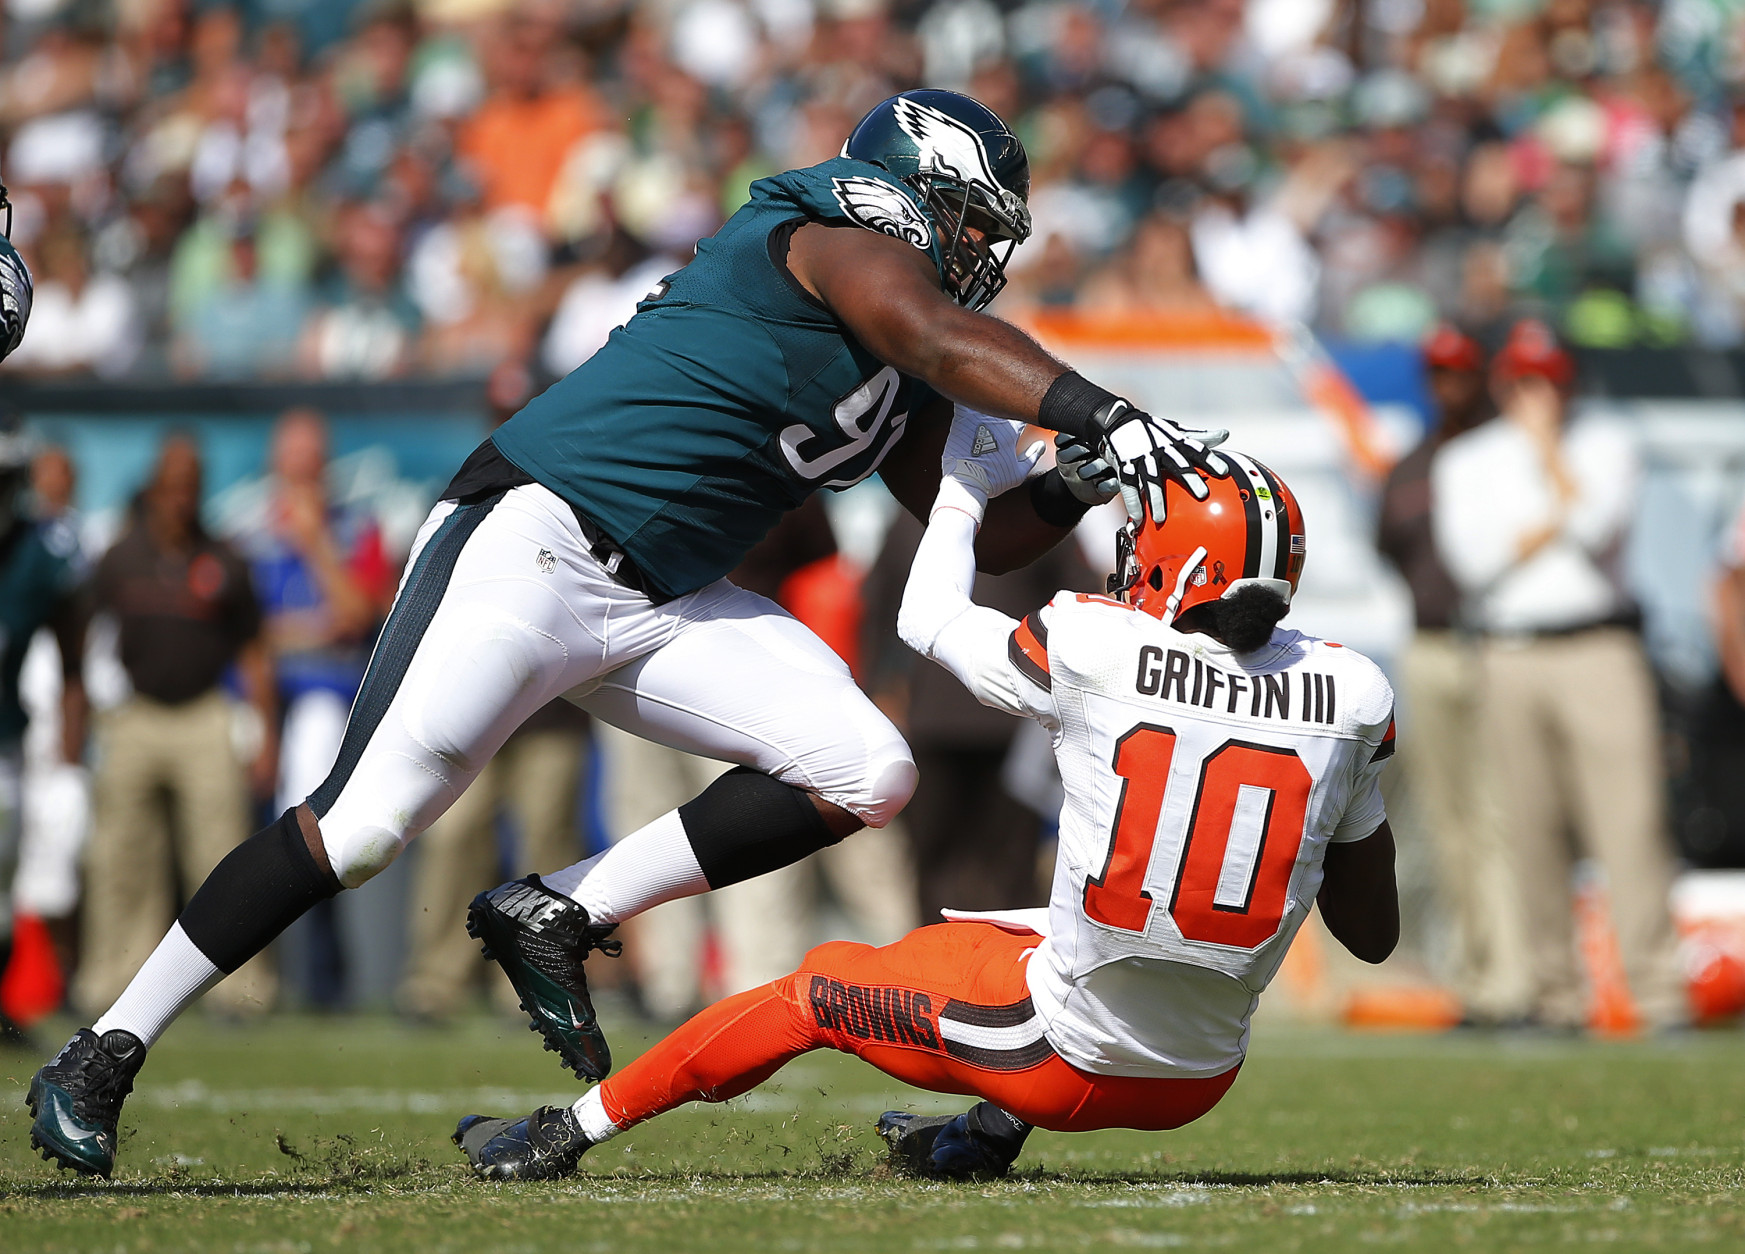 PHILADELPHIA, PA - SEPTEMBER 11: Fletcher Cox #91 of the Philadelphia Eagles sacks quarterback Robert Griffin III #10 of the Cleveland Browns during the third quarter at Lincoln Financial Field on September 11, 2016 in Philadelphia, Pennsylvania. The Eagles defeated the Browns 29-10. (Photo by Rich Schultz/Getty Images)